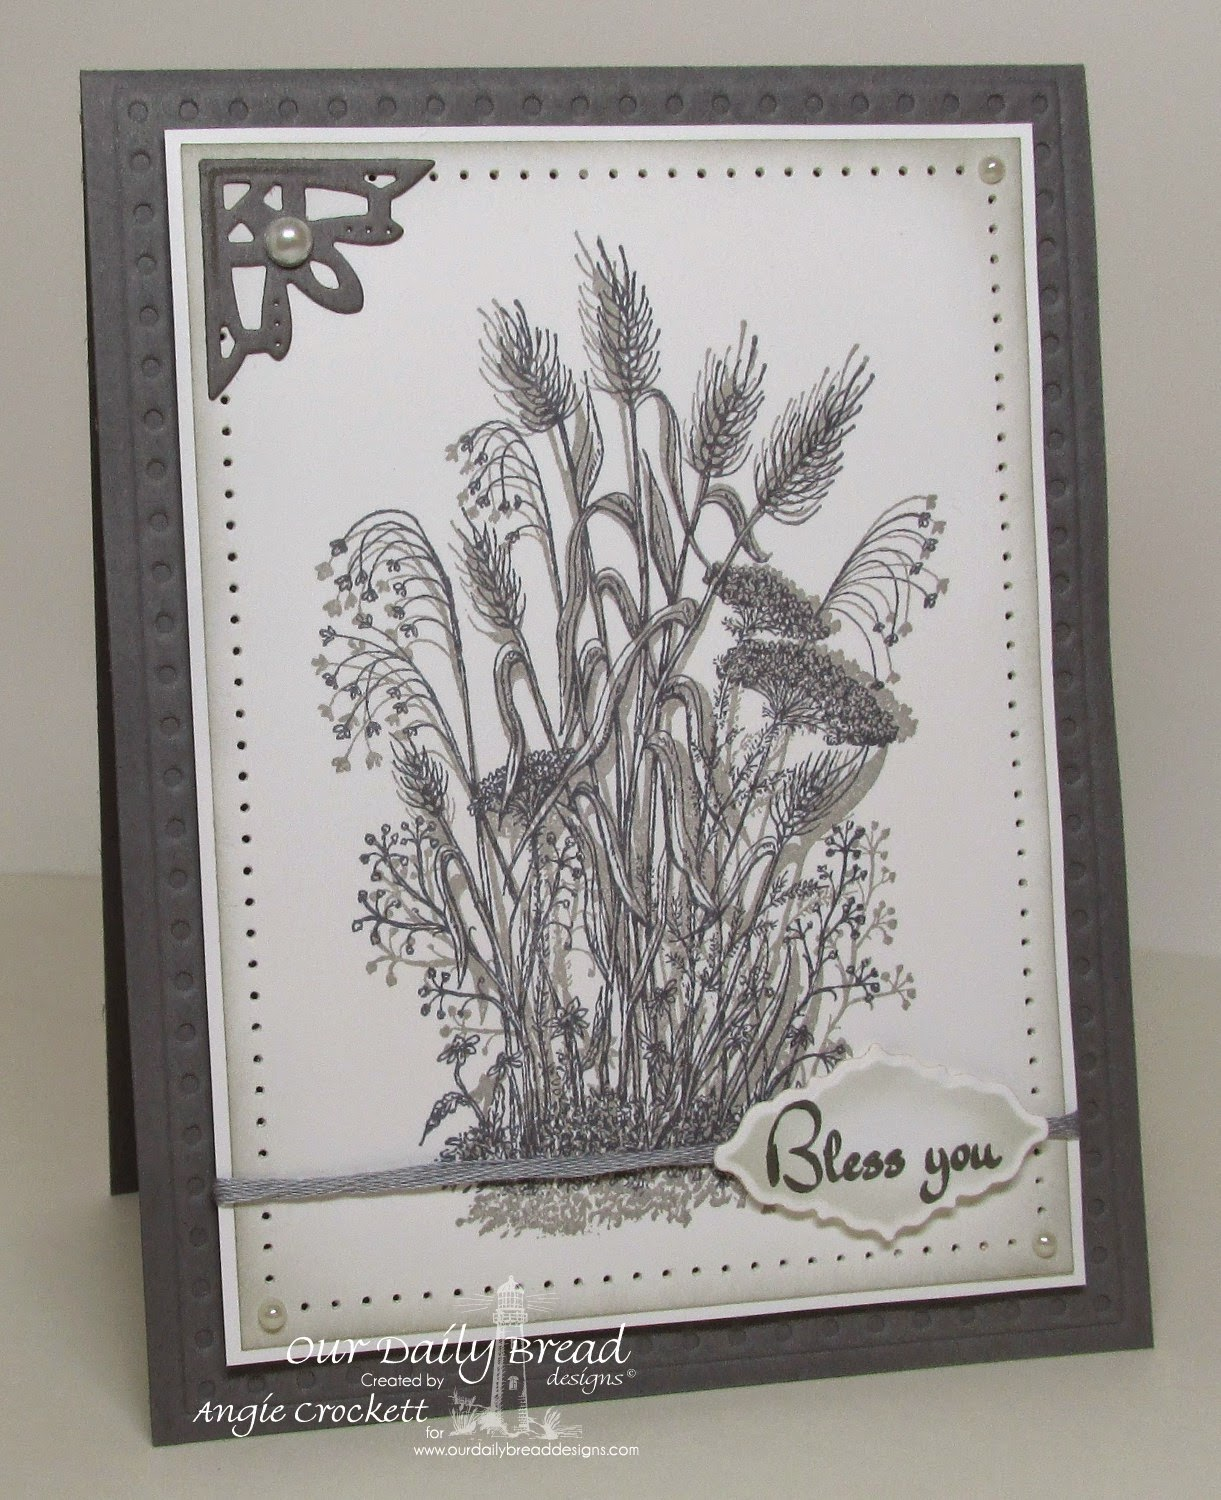 ODBD Miss You, ODBD Life is a Gift, ODBD Custom Ornate Borders and Flower Dies, ODBD Custom Faithful Fish Pattern Die and Debossing Plate, Card Designer Angie Crockett